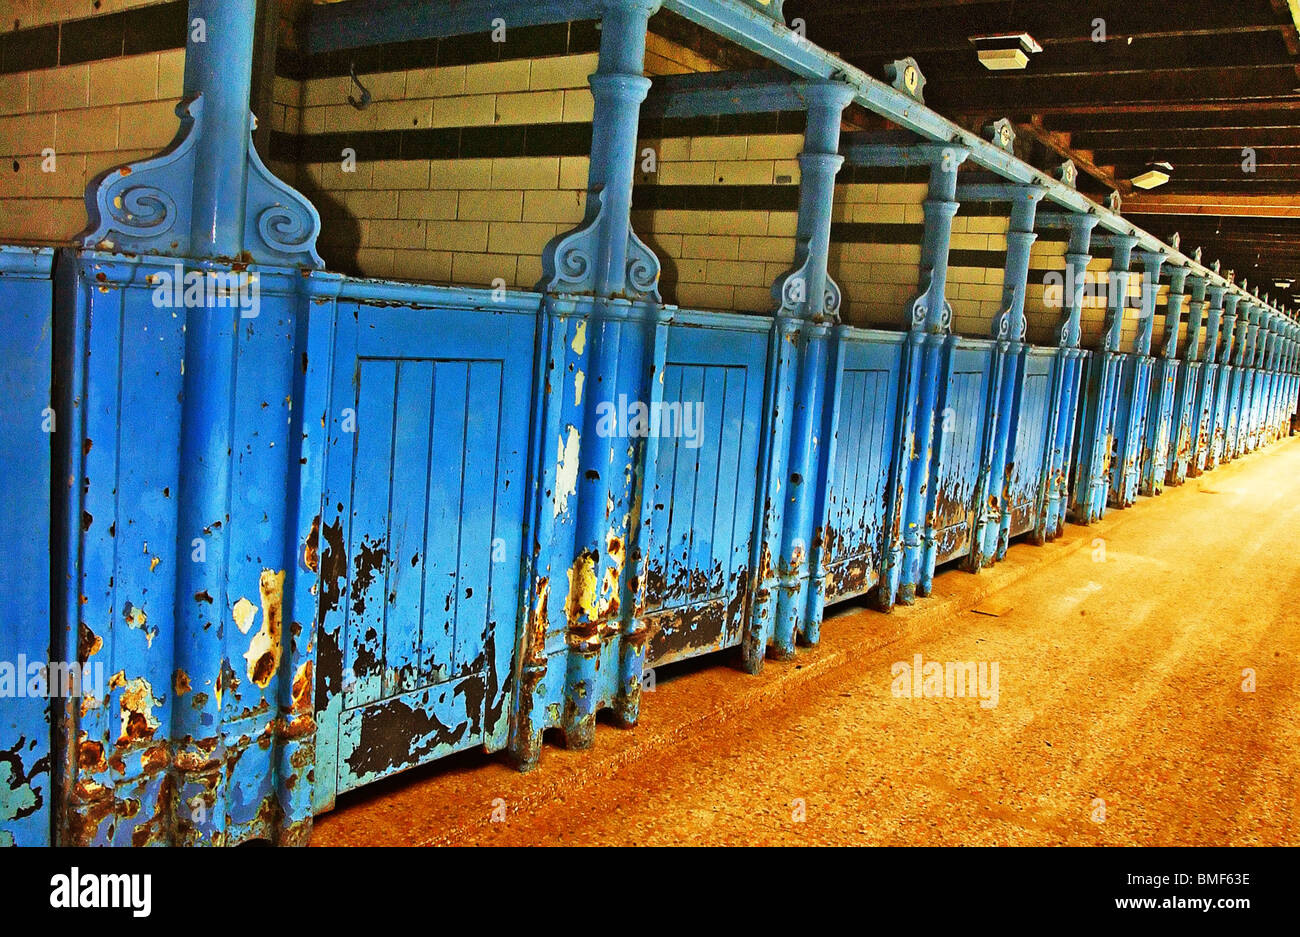 Line of changing cubicles at Victoria Baths in Hathersage Rd., Manchester, UK. - Stock Image